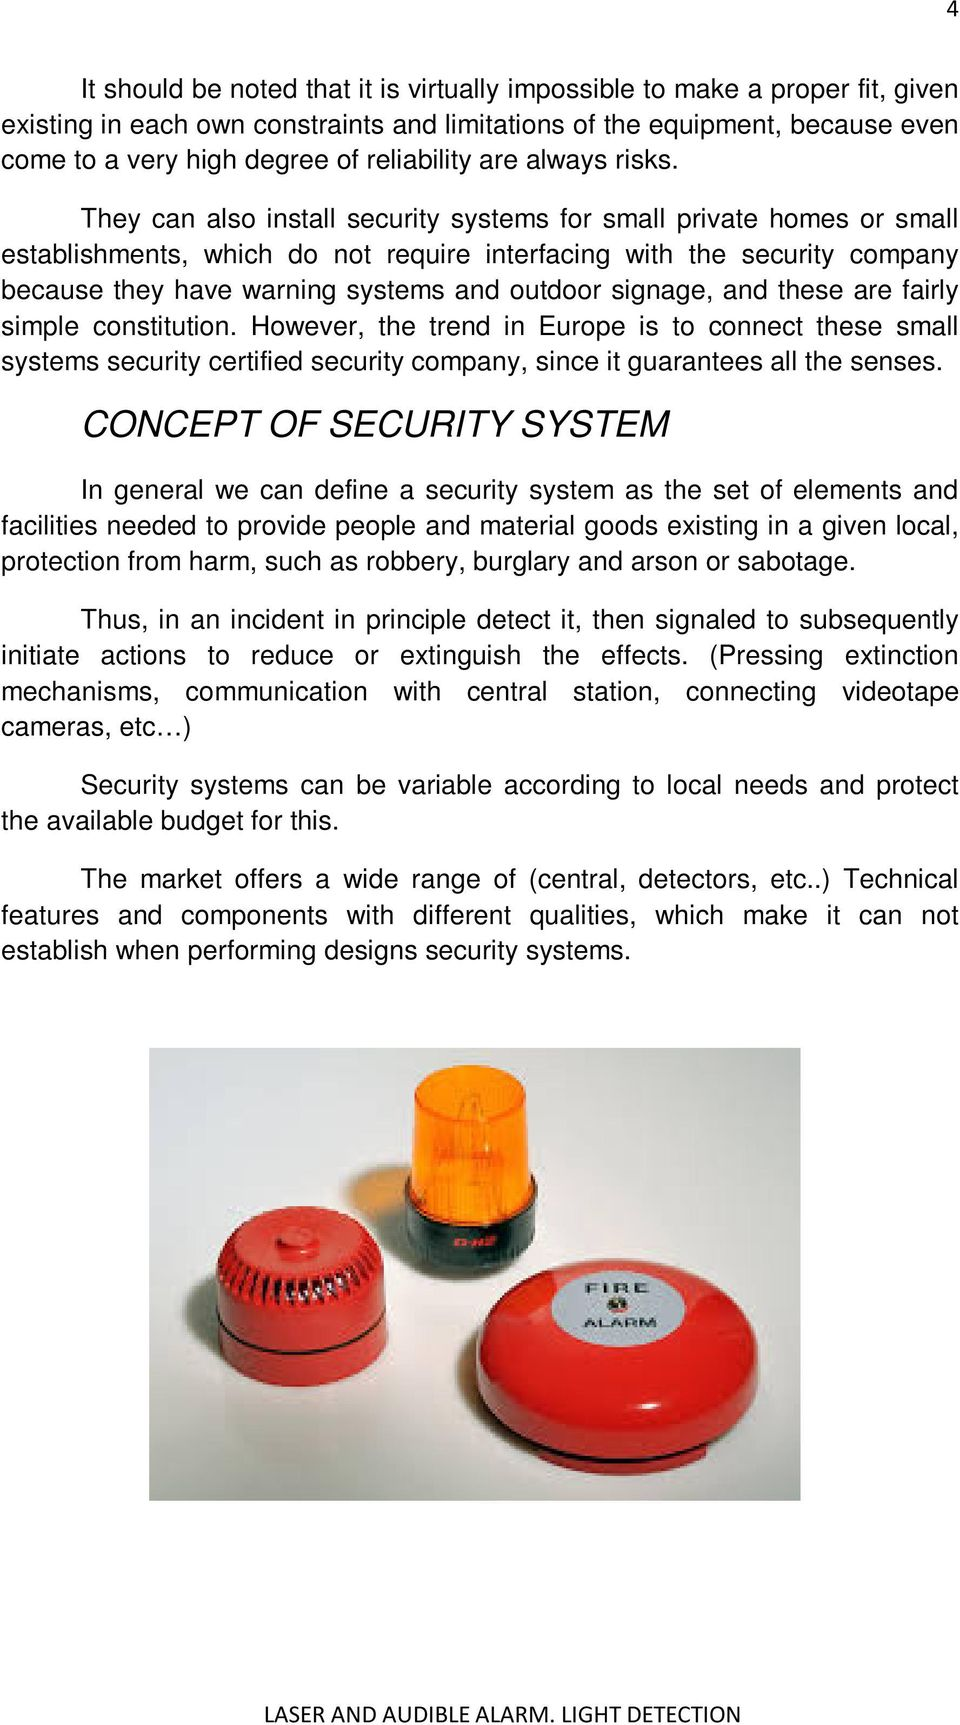 They can also install security systems for small private homes or small establishments, which do not require interfacing with the security company because they have warning systems and outdoor